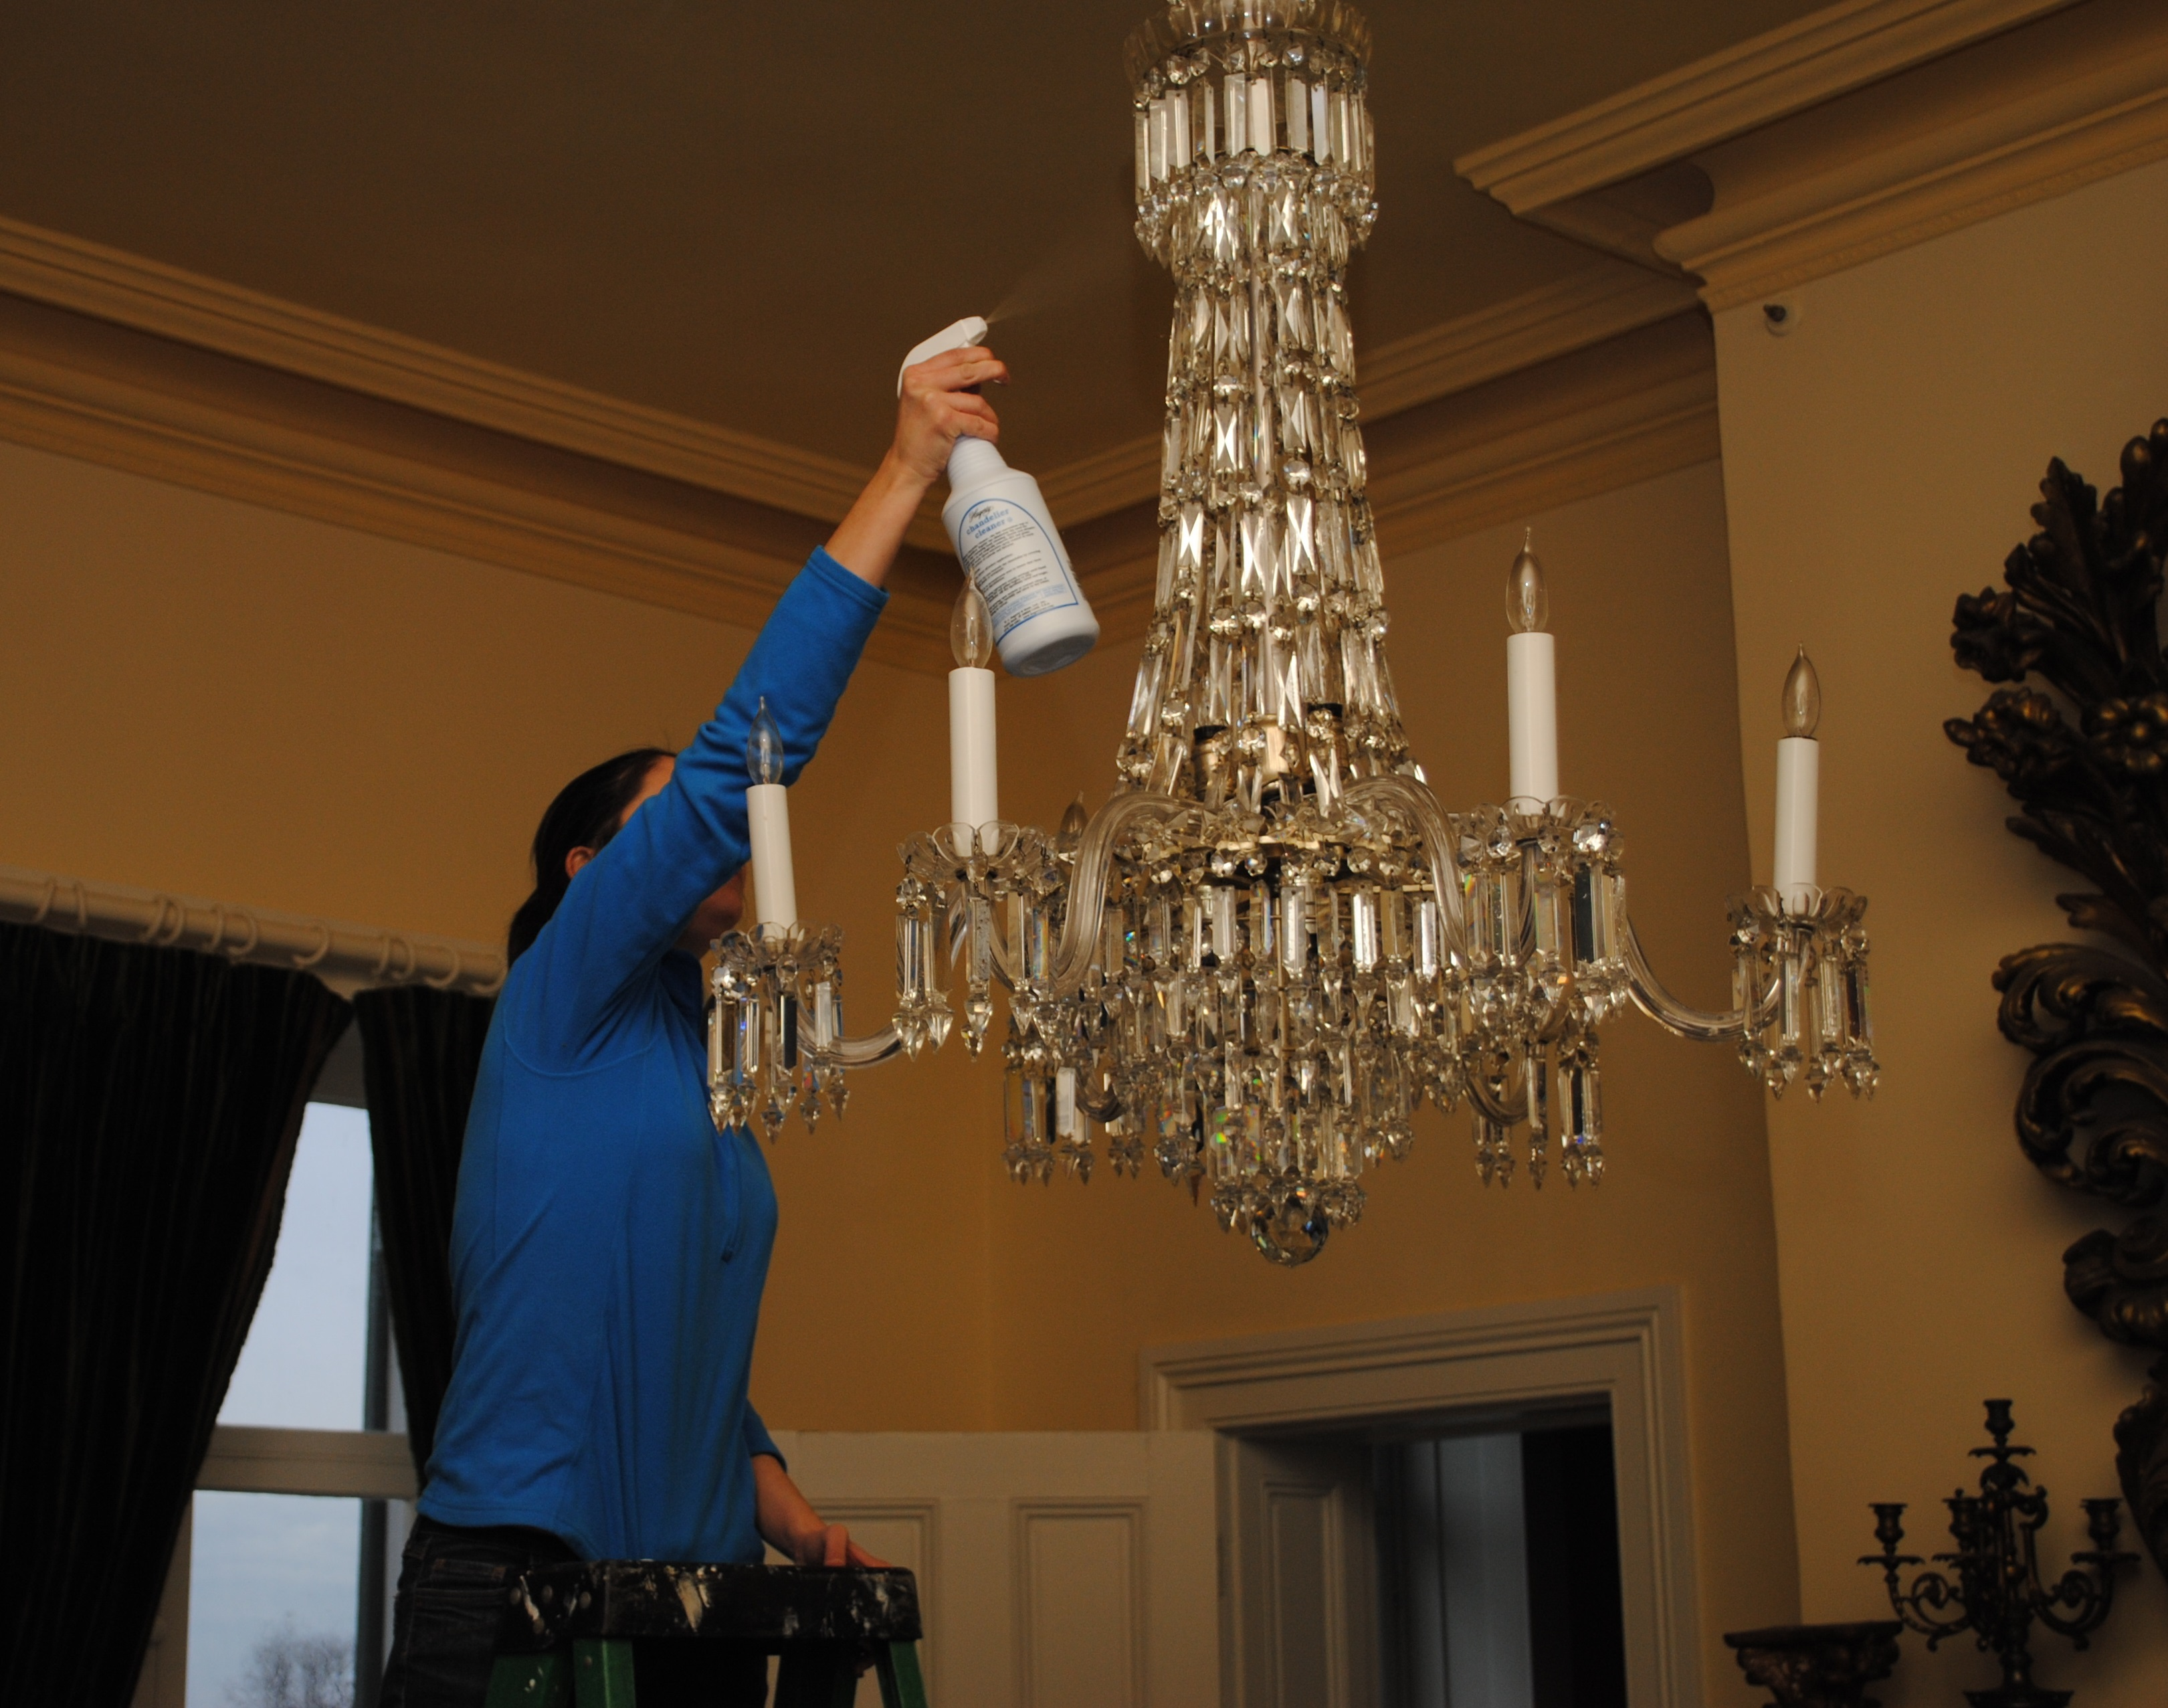 Dusting, vacuuming, polishing – it takes a lot to keep the Morven Park Davis Mansion sparkling. Your $25 donation will help pay for the specialty cleaning products needed to ensure the long-term survival of Marguerite's eclectic collection.